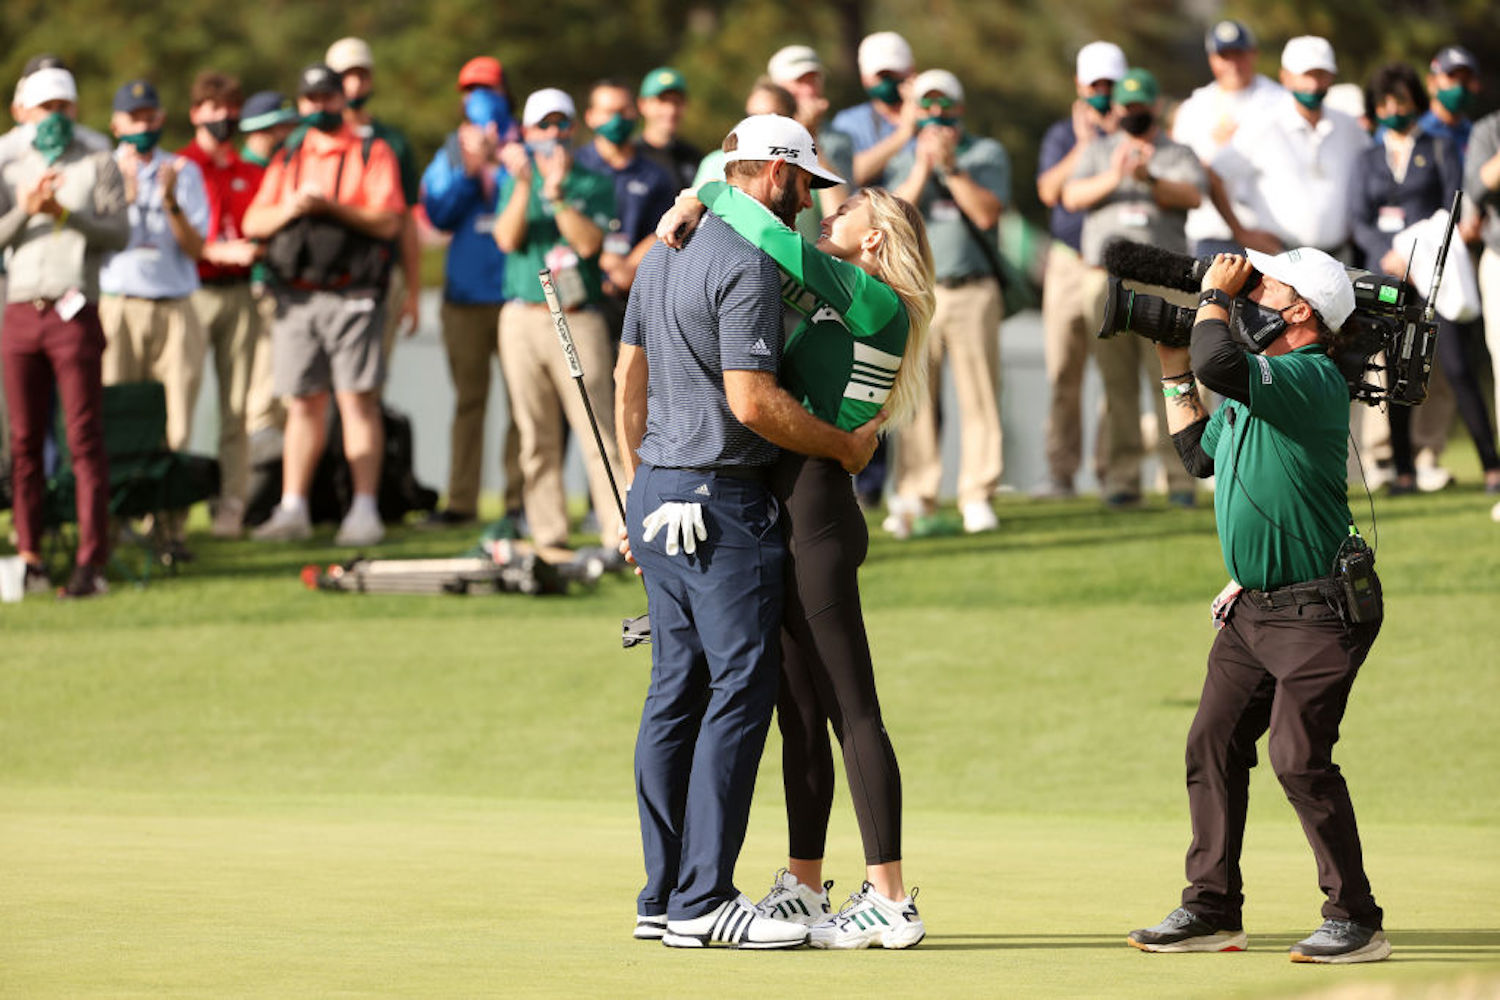 Dustin Johnson is routinely seen embracing The Great One's daughter, Paulina Gretzky, after his wins, but are the two married?